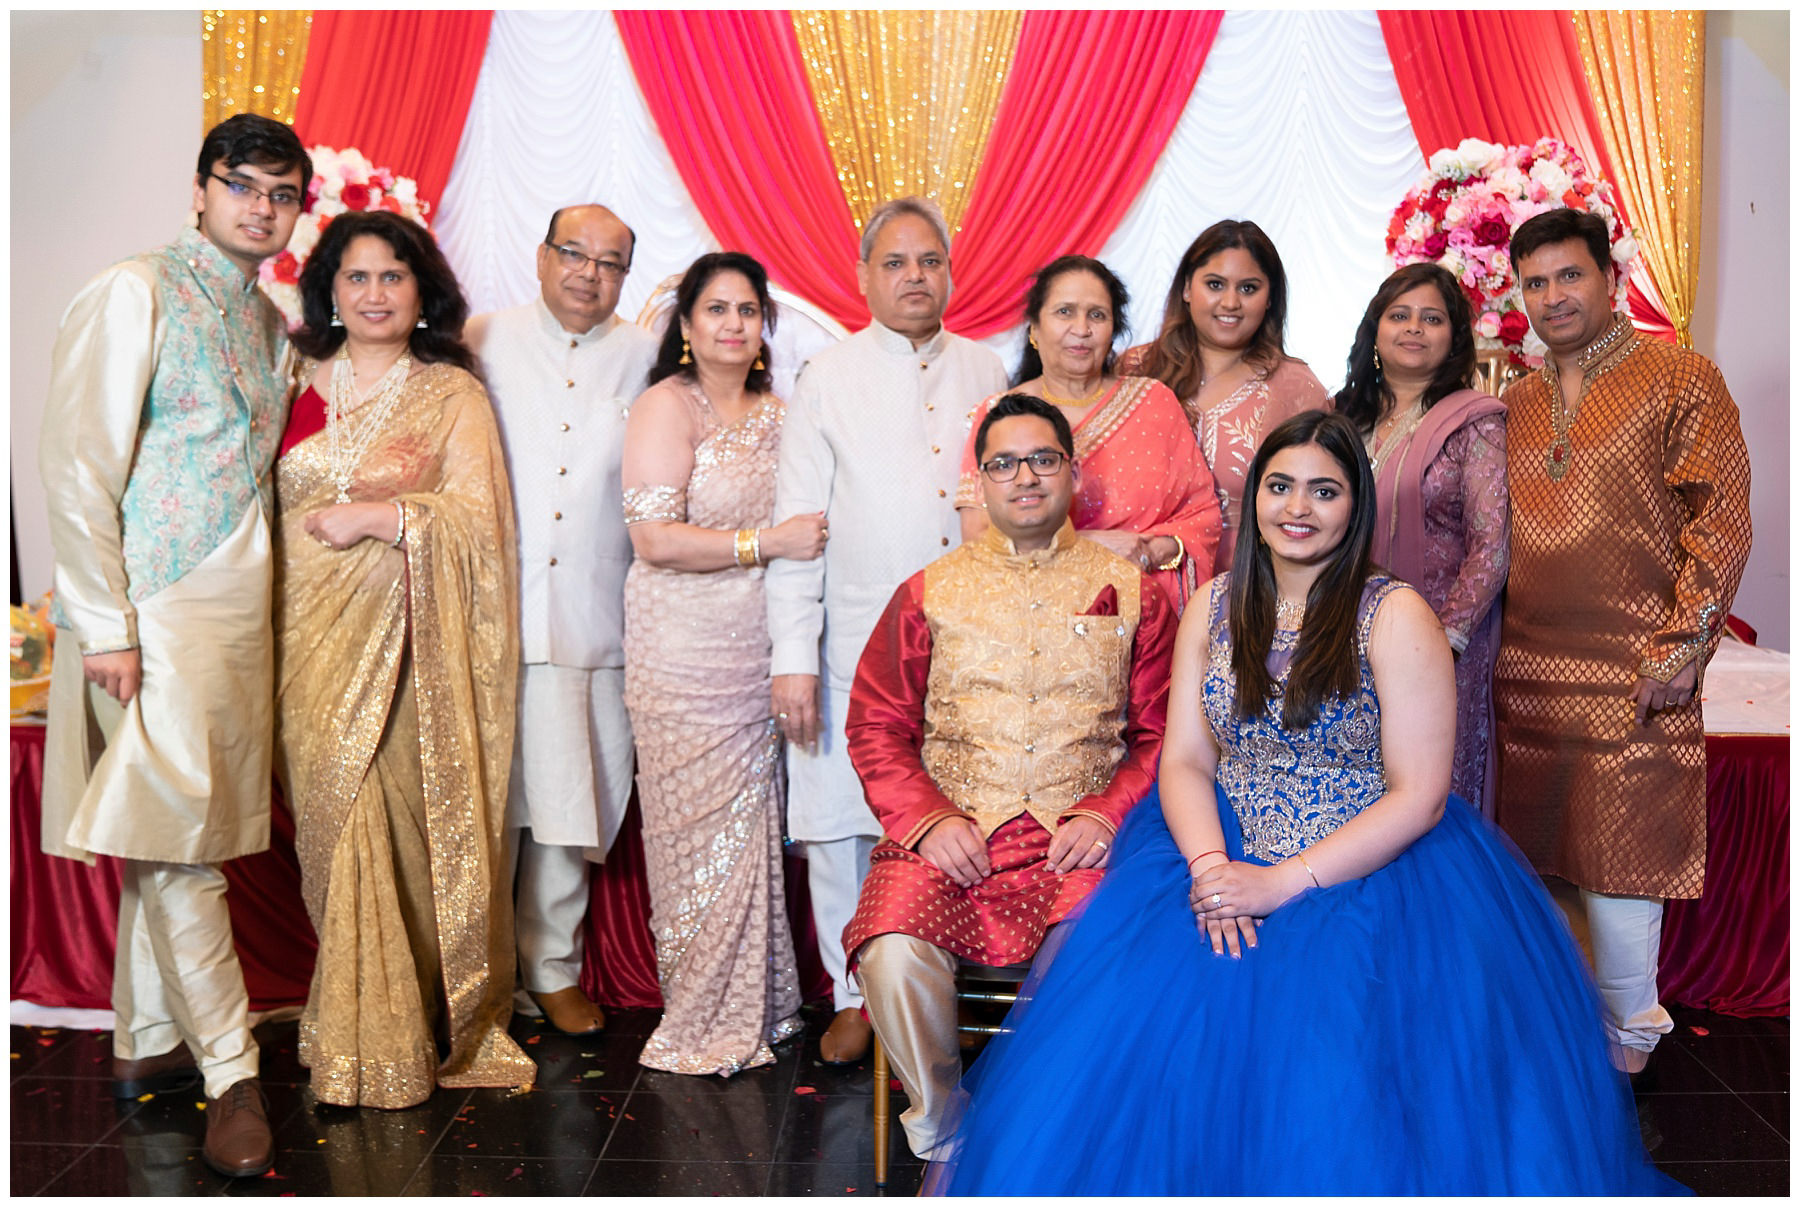 royal-alberts-palace-fords-nj-engagement-vidushi-ankush-33.jpg